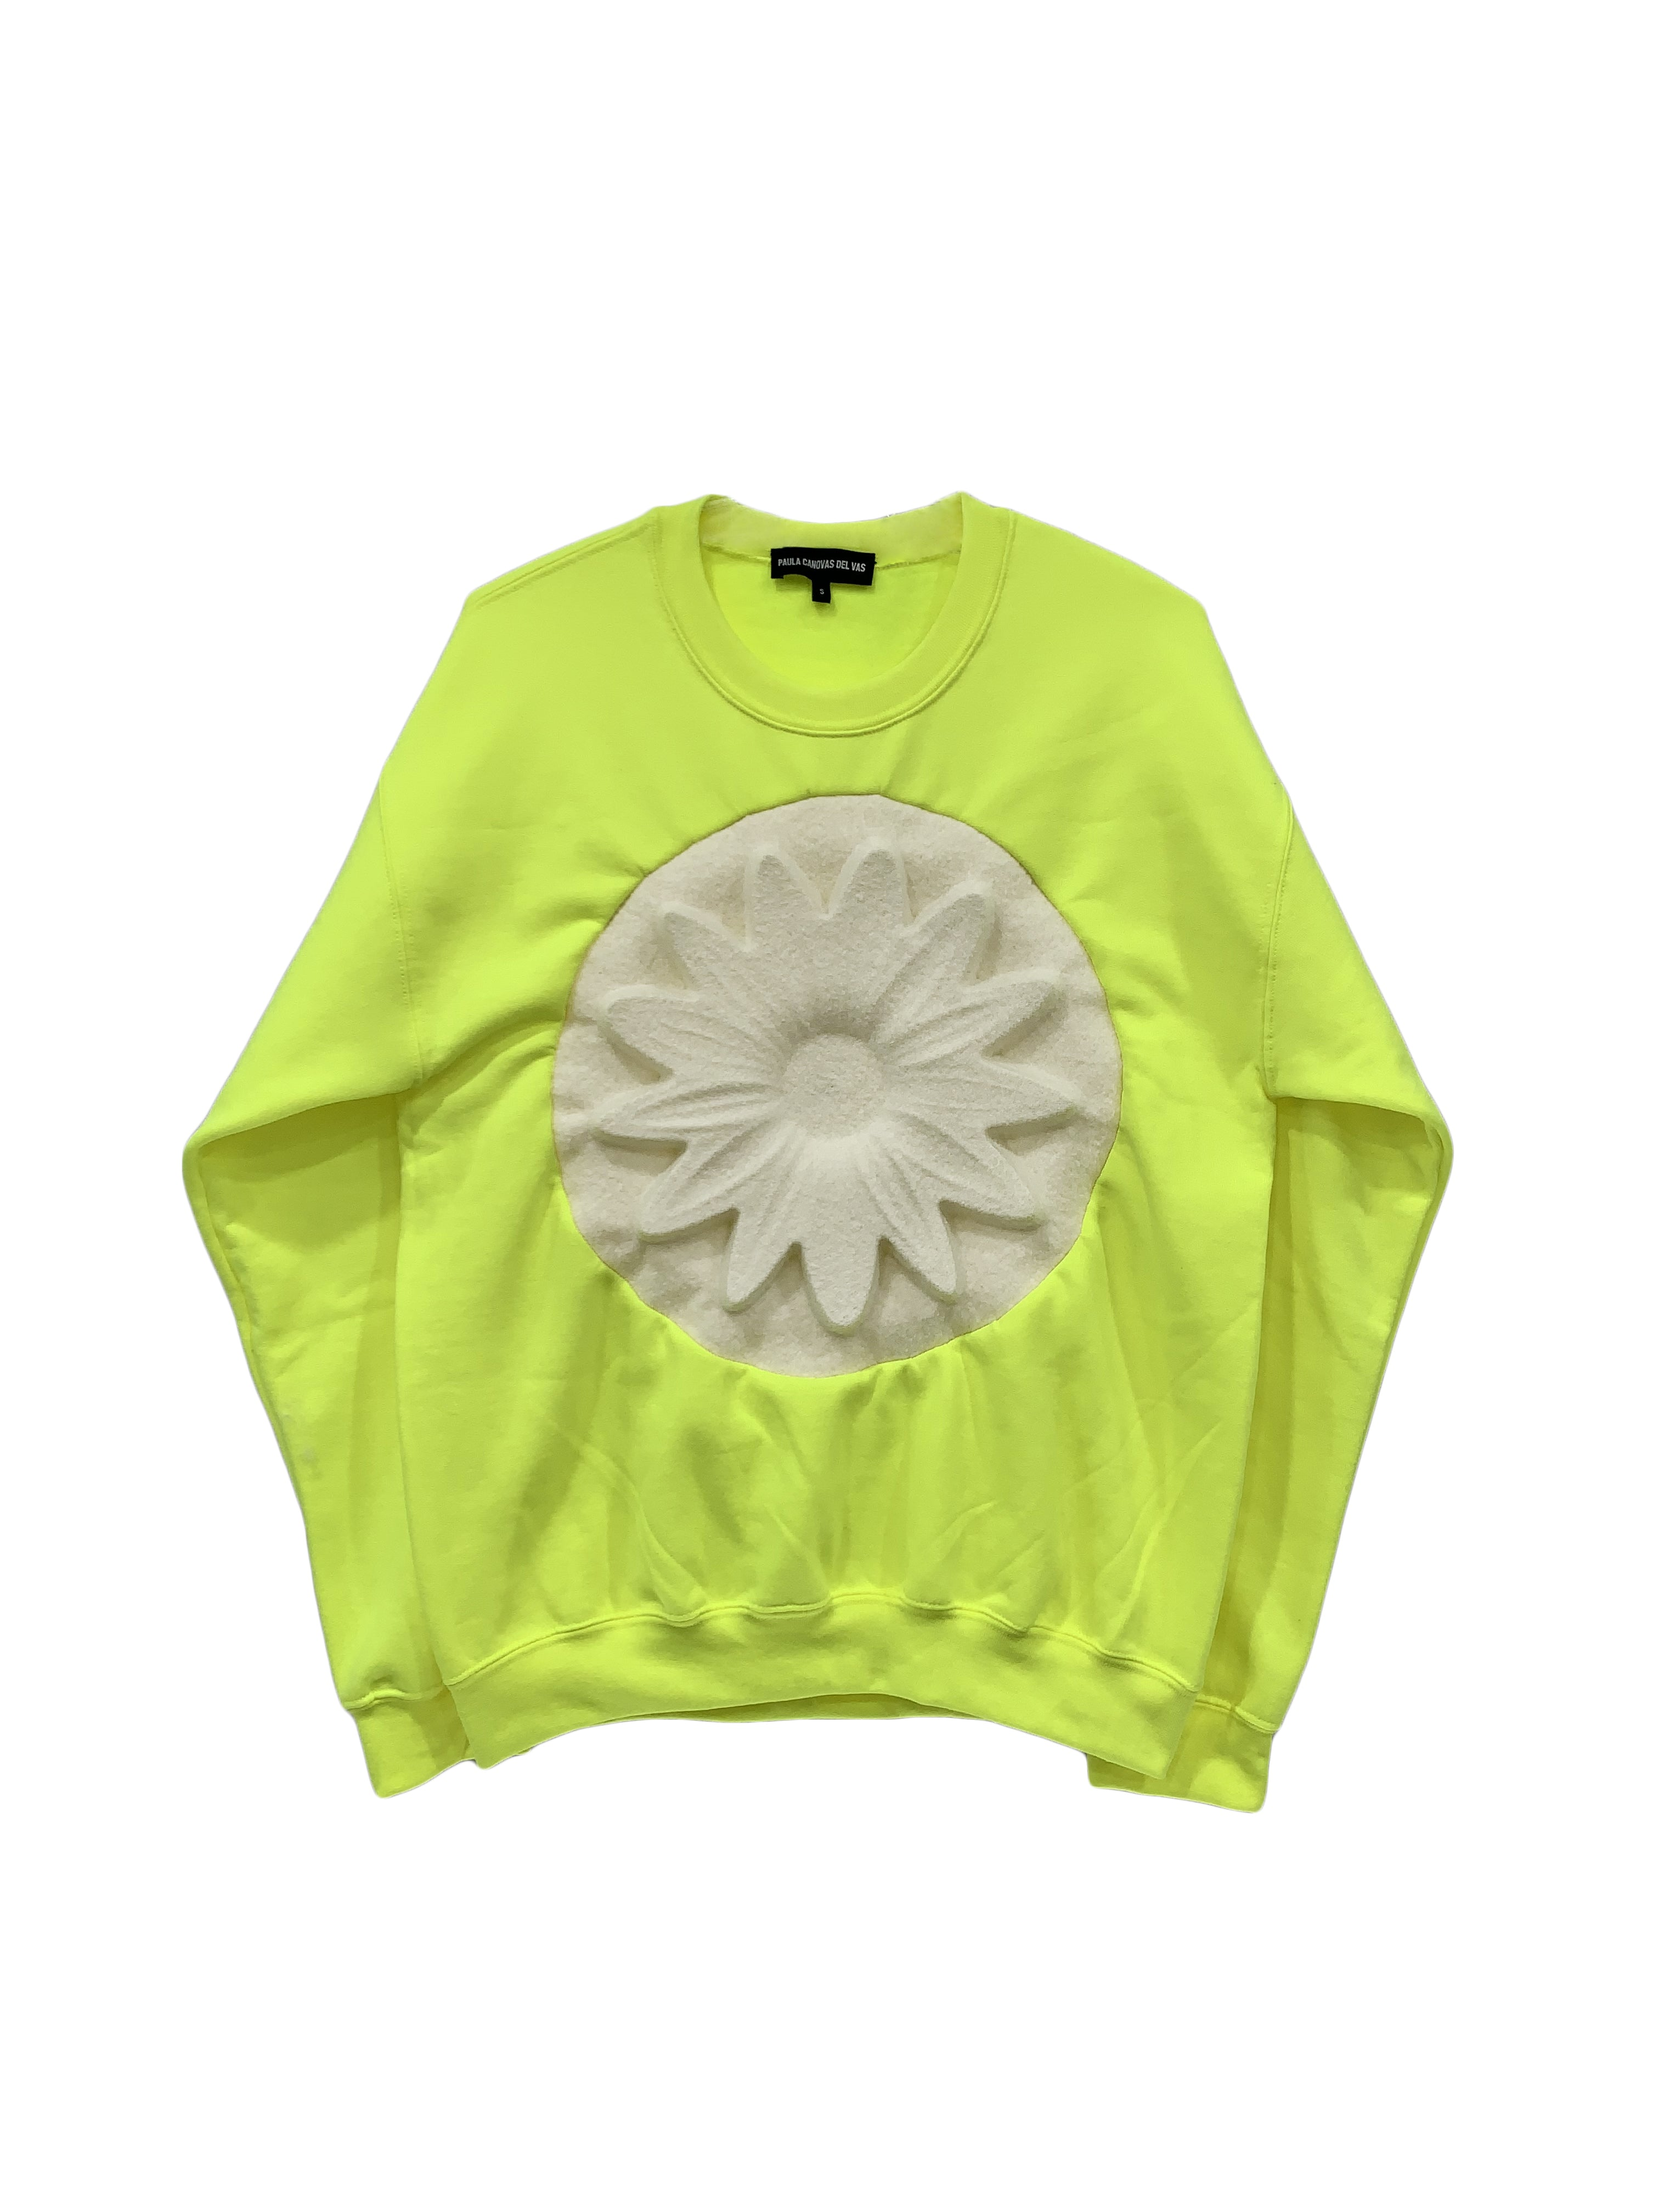 Flower Embossed Sweatshirt (Yellow)